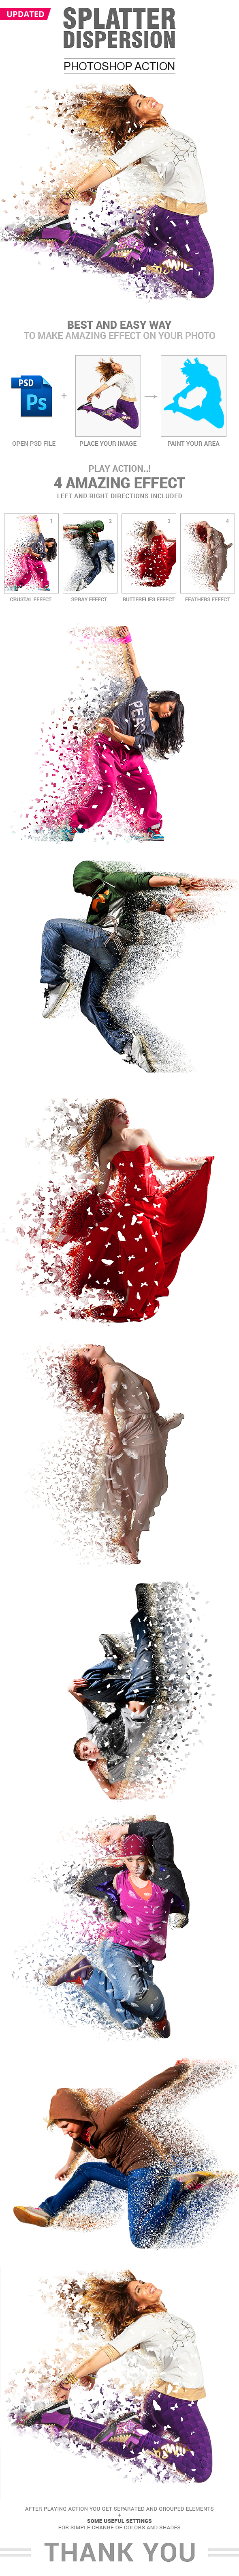 Splatter Dispersion 4 Effect in 1 Action - Photo Effects Actions